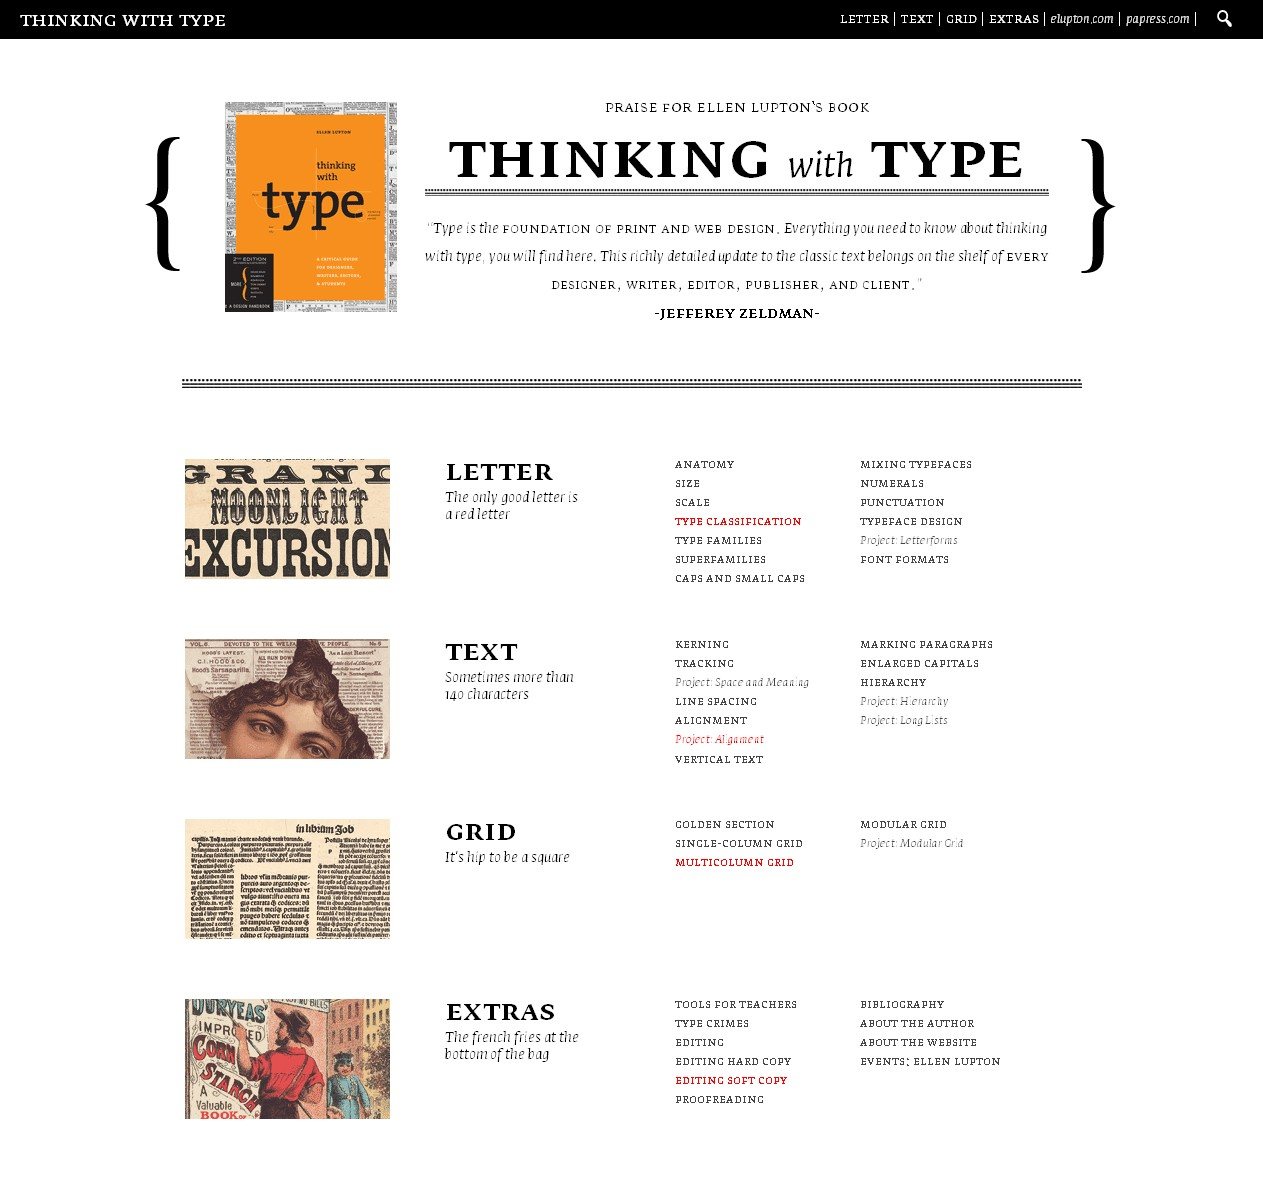 thinking with type website